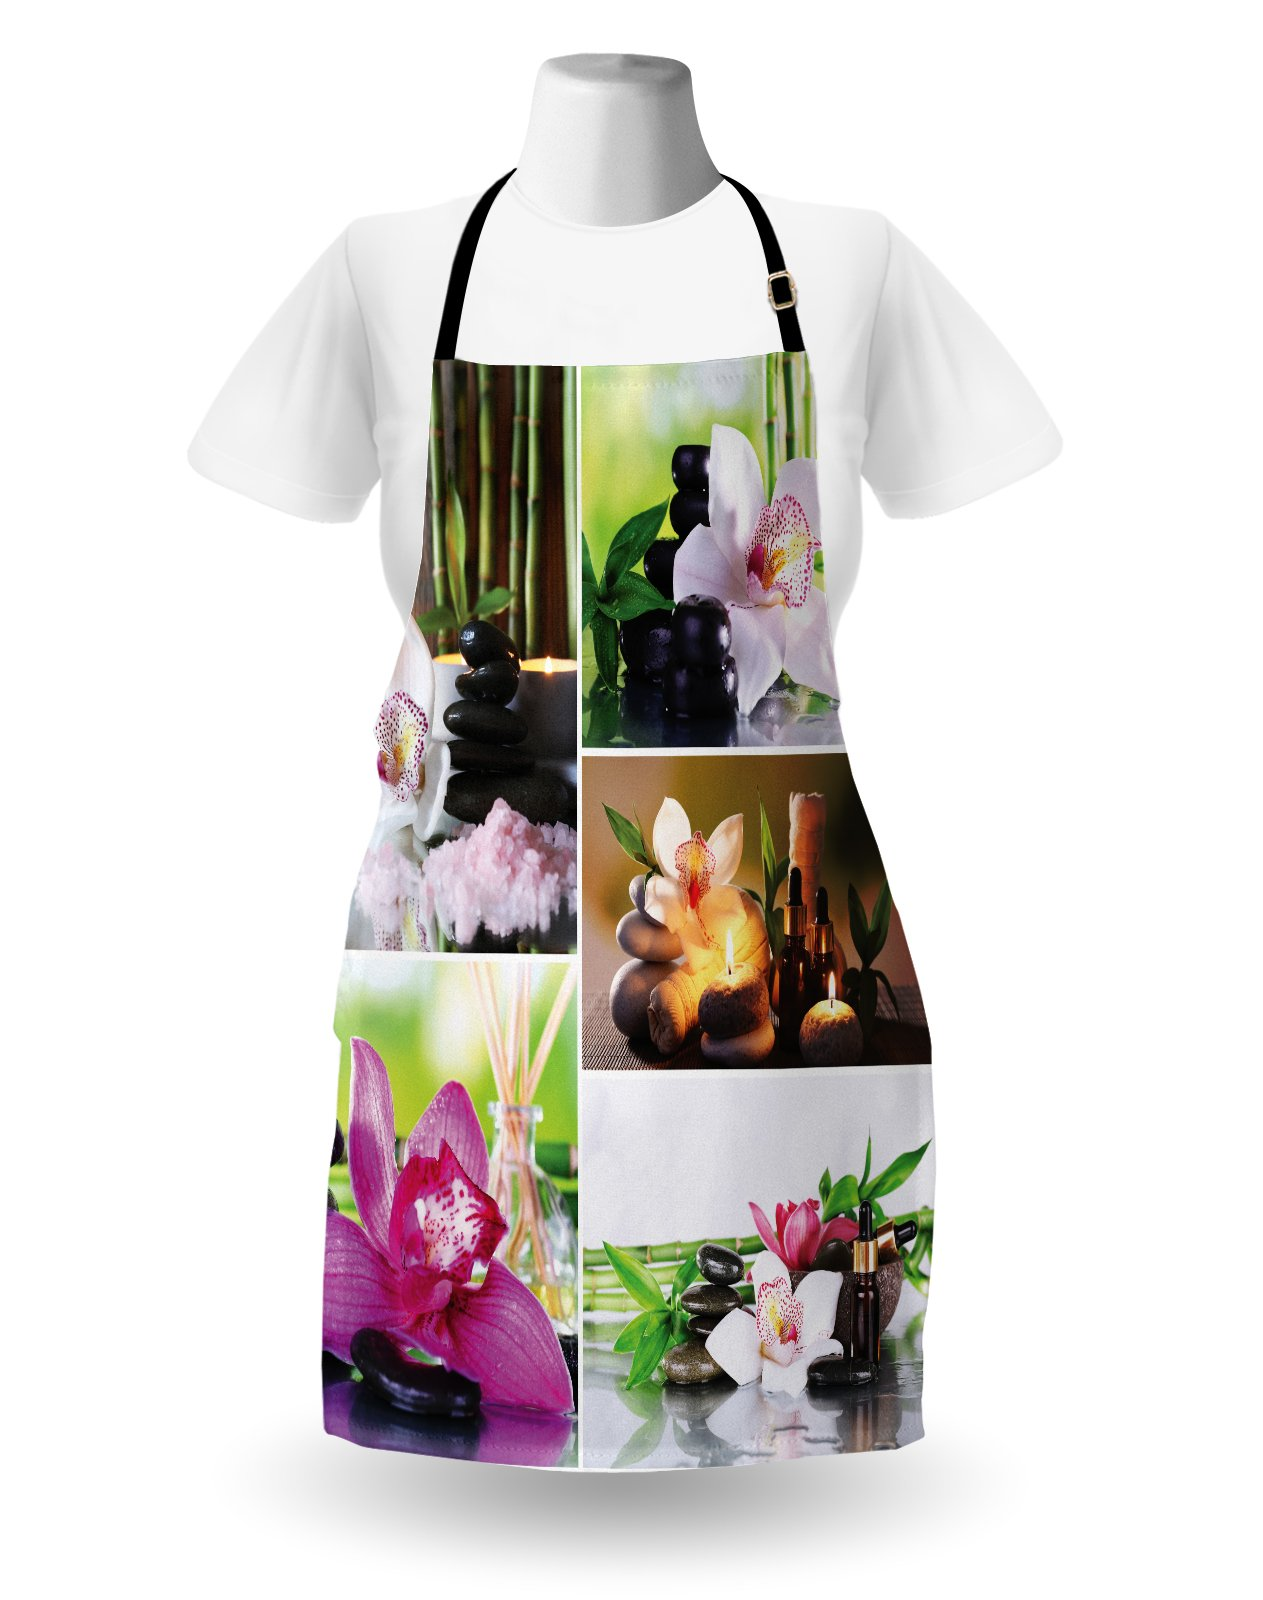 Lunarable Spa Apron, Spa Day Collage with Orchids Stone Pebbles Natural Herbal Oils Body and Mind Treatment, Unisex Kitchen Bib Apron with Adjustable Neck for Cooking Baking Gardening, Multicolor by Lunarable (Image #2)